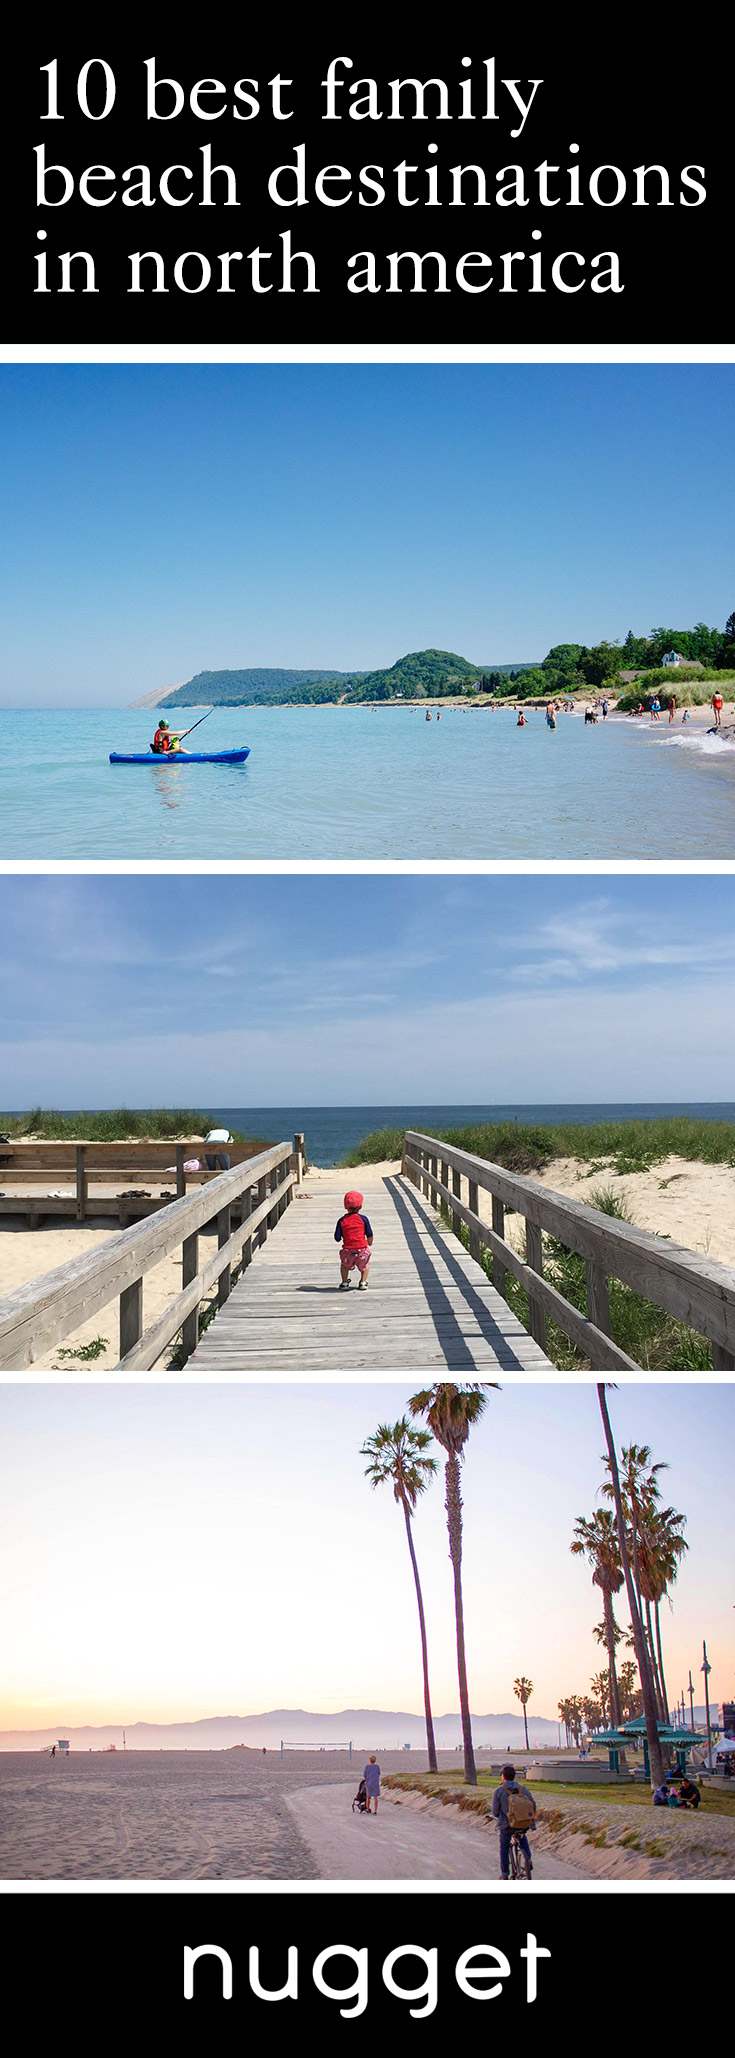 10 Best Family Beach Destinations in North America